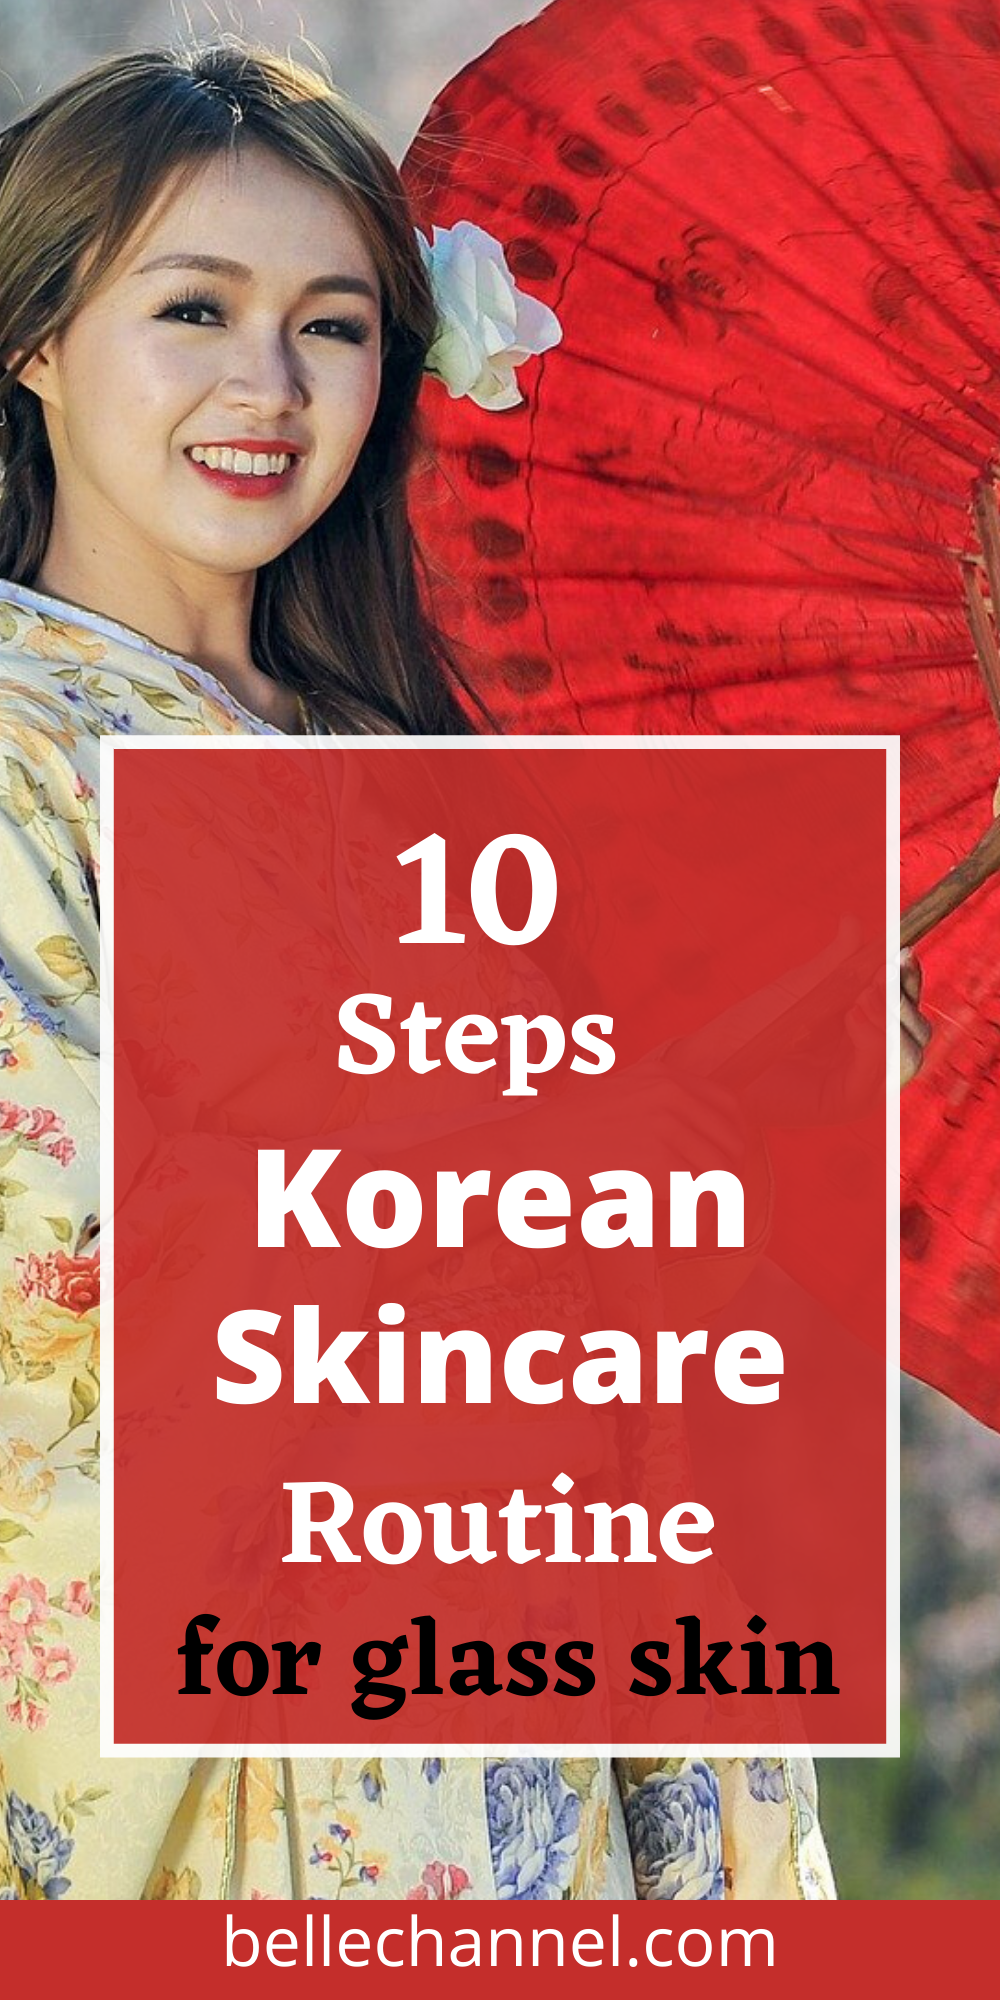 The ultimate guide to the Korean skincare routine in the right order. Learn how to K-beauty routine for glass skin with highly recommended Korean skincare products. #koreanskincareroutine #kbeautyroutine #glassskin #10stepskincare #radiantglow